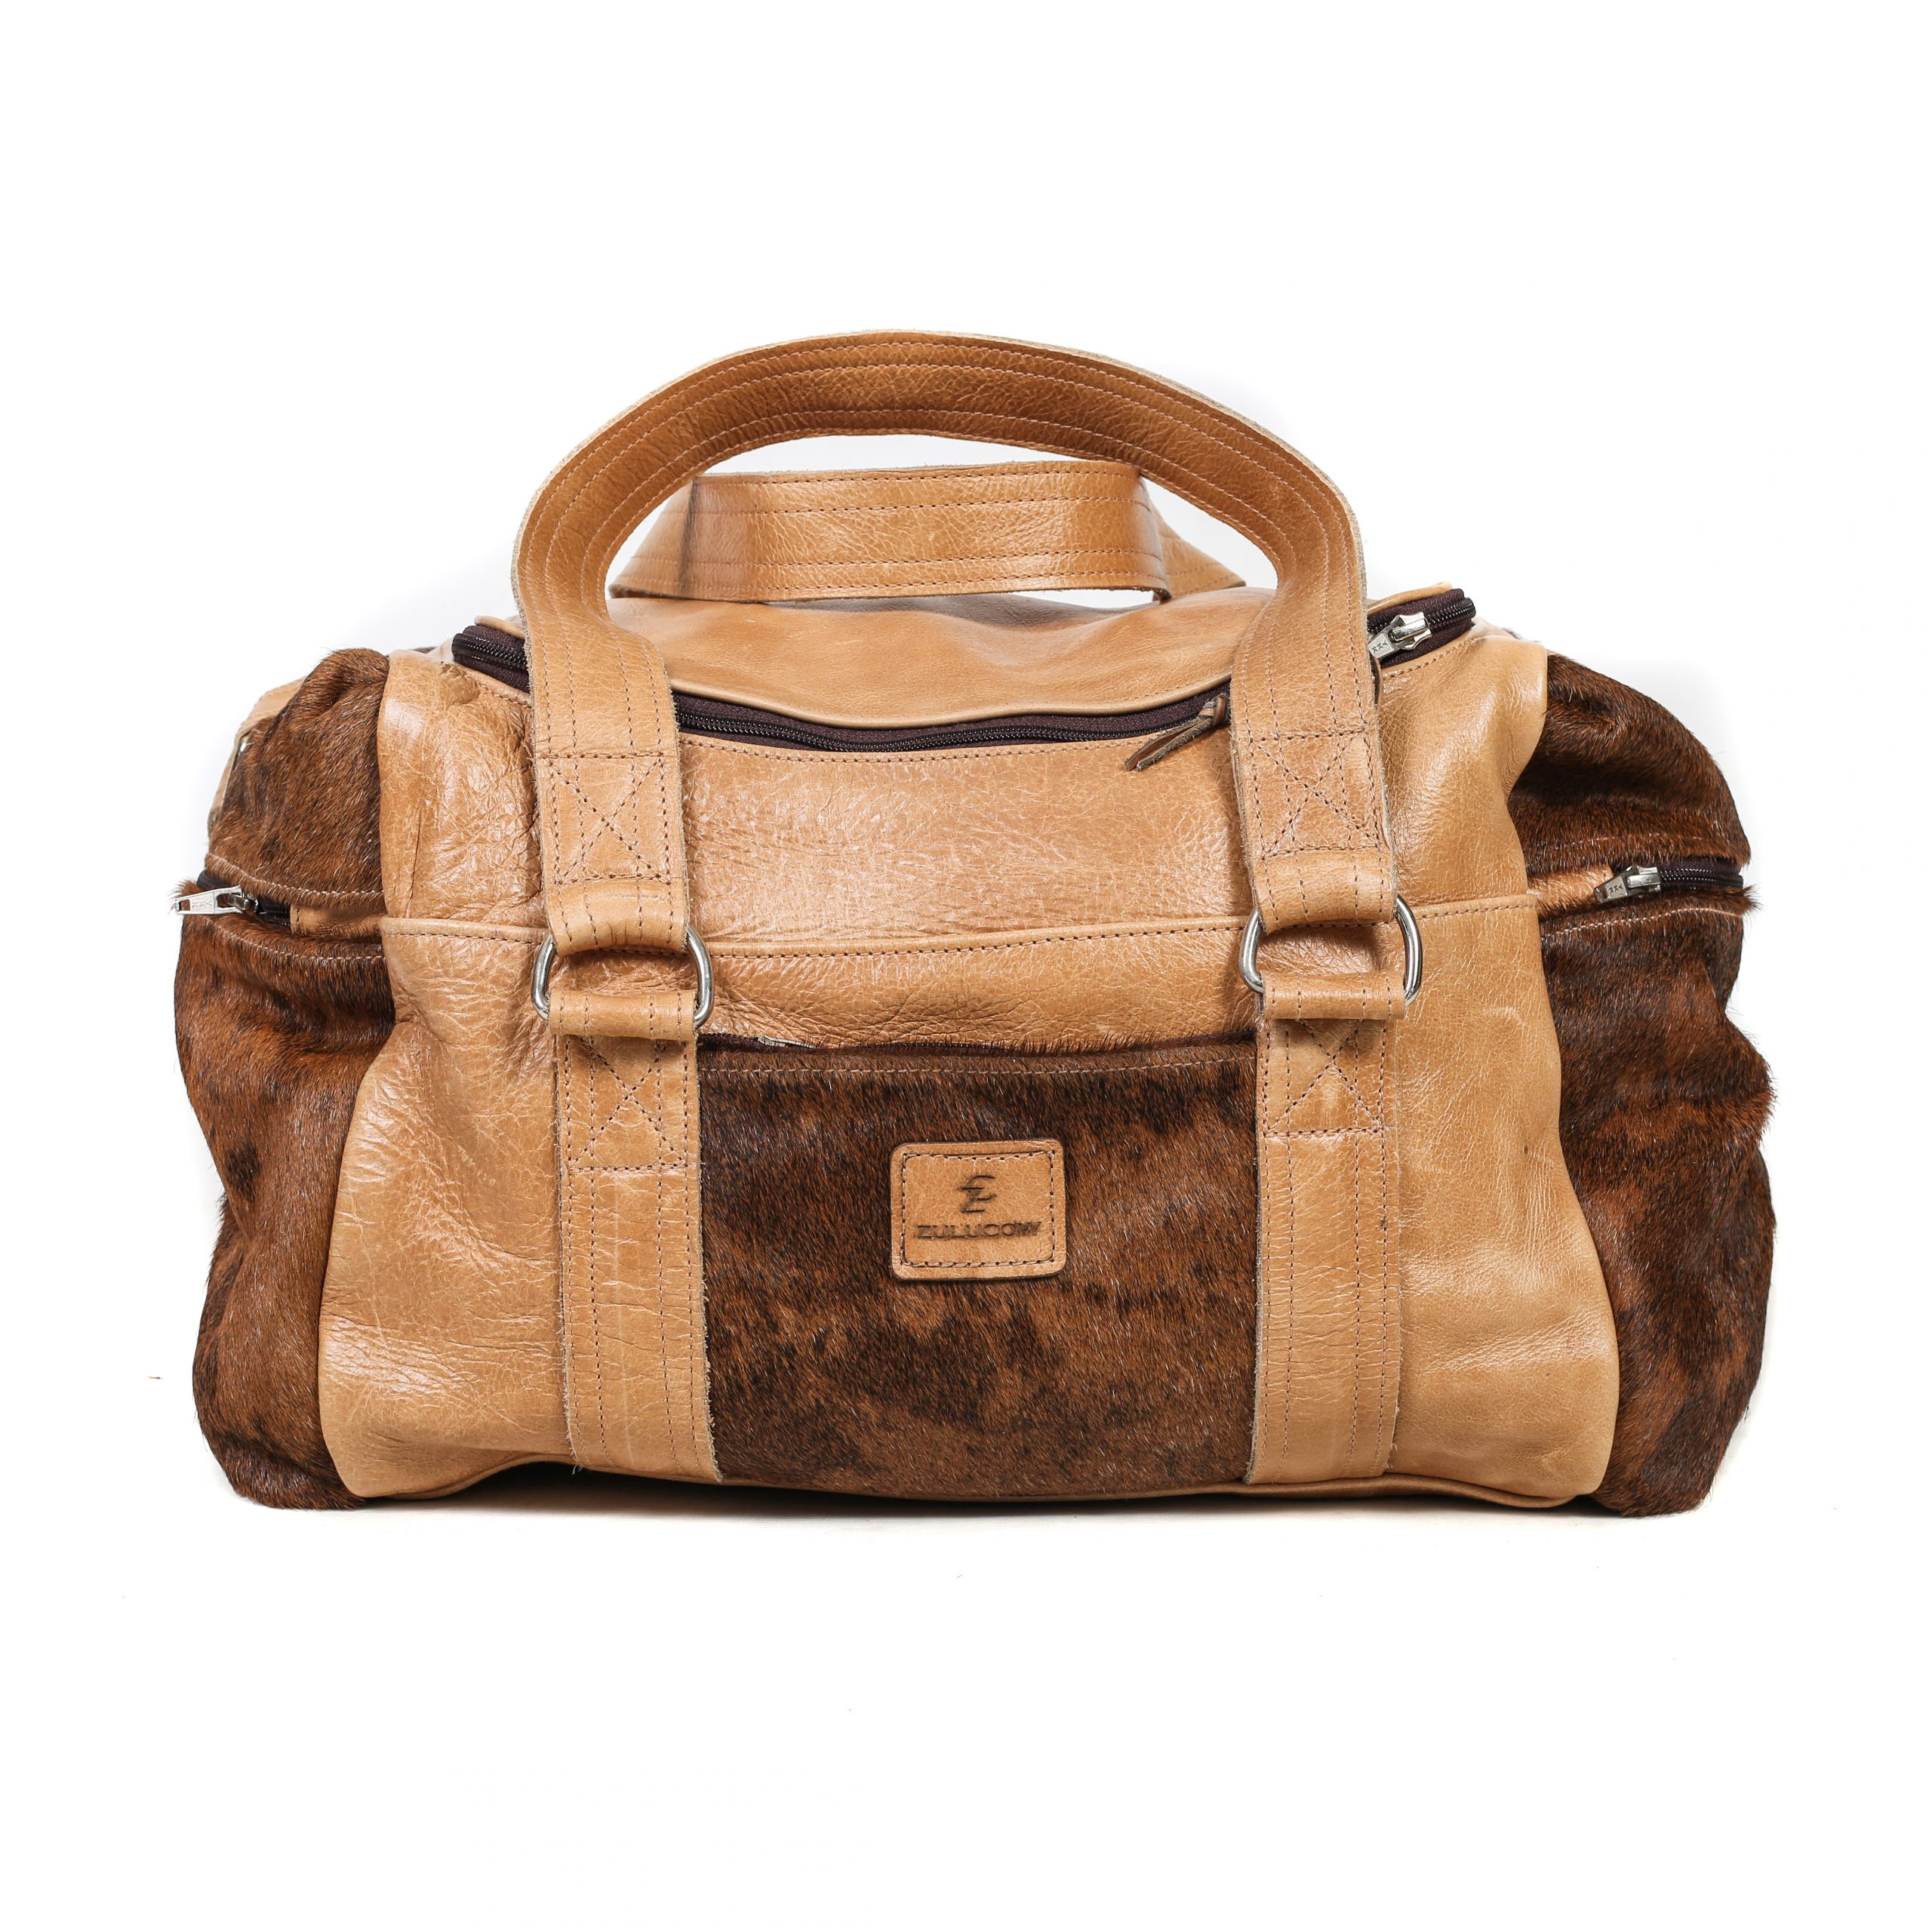 79e464bc6ed Zulucow Nguni cowhide leather weekend bag brown and white travel bag travel  accessories holdall luggage